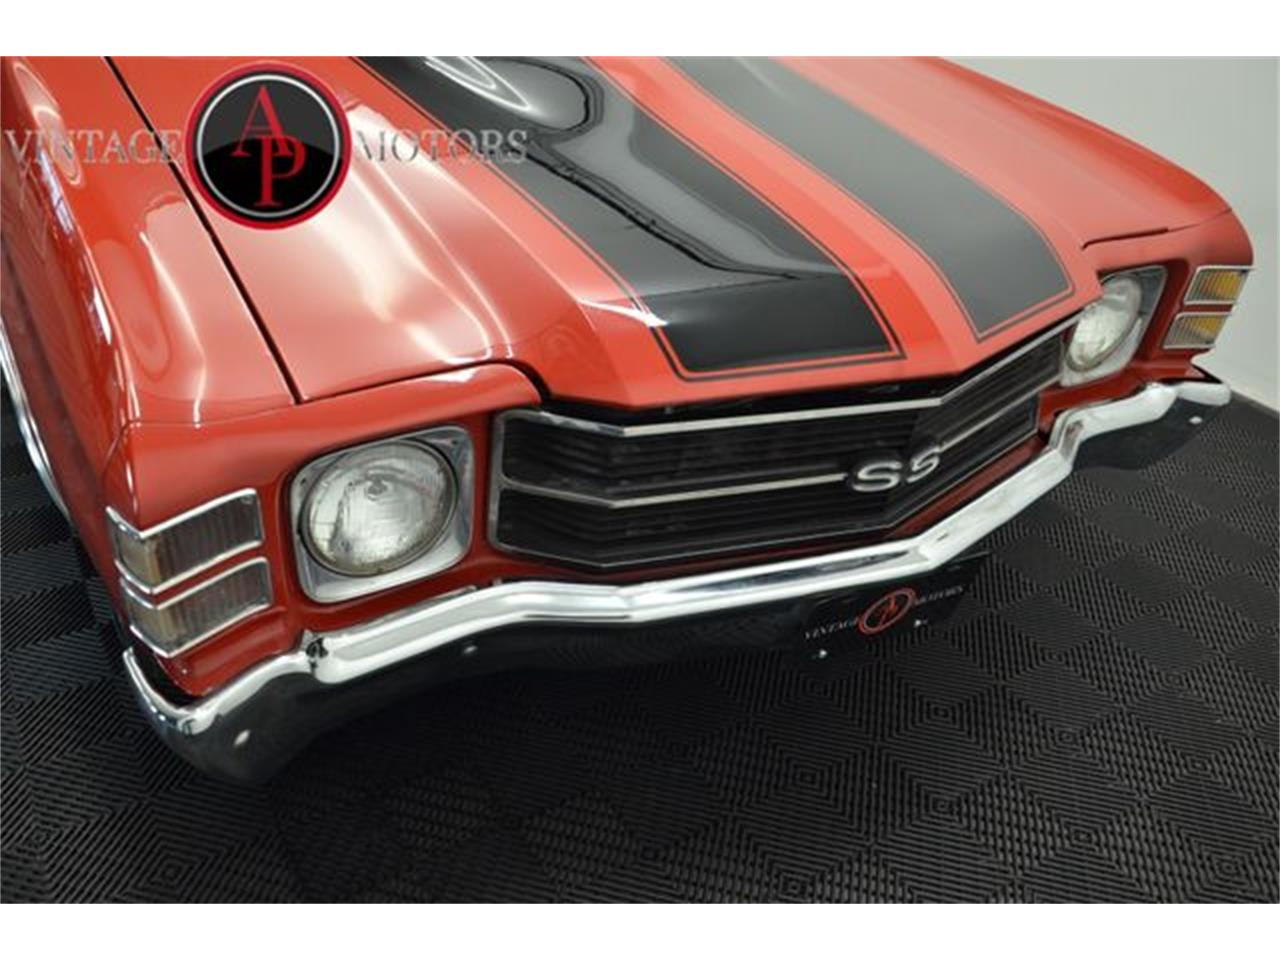 1971 Chevrolet Chevelle for sale in Statesville, NC – photo 22